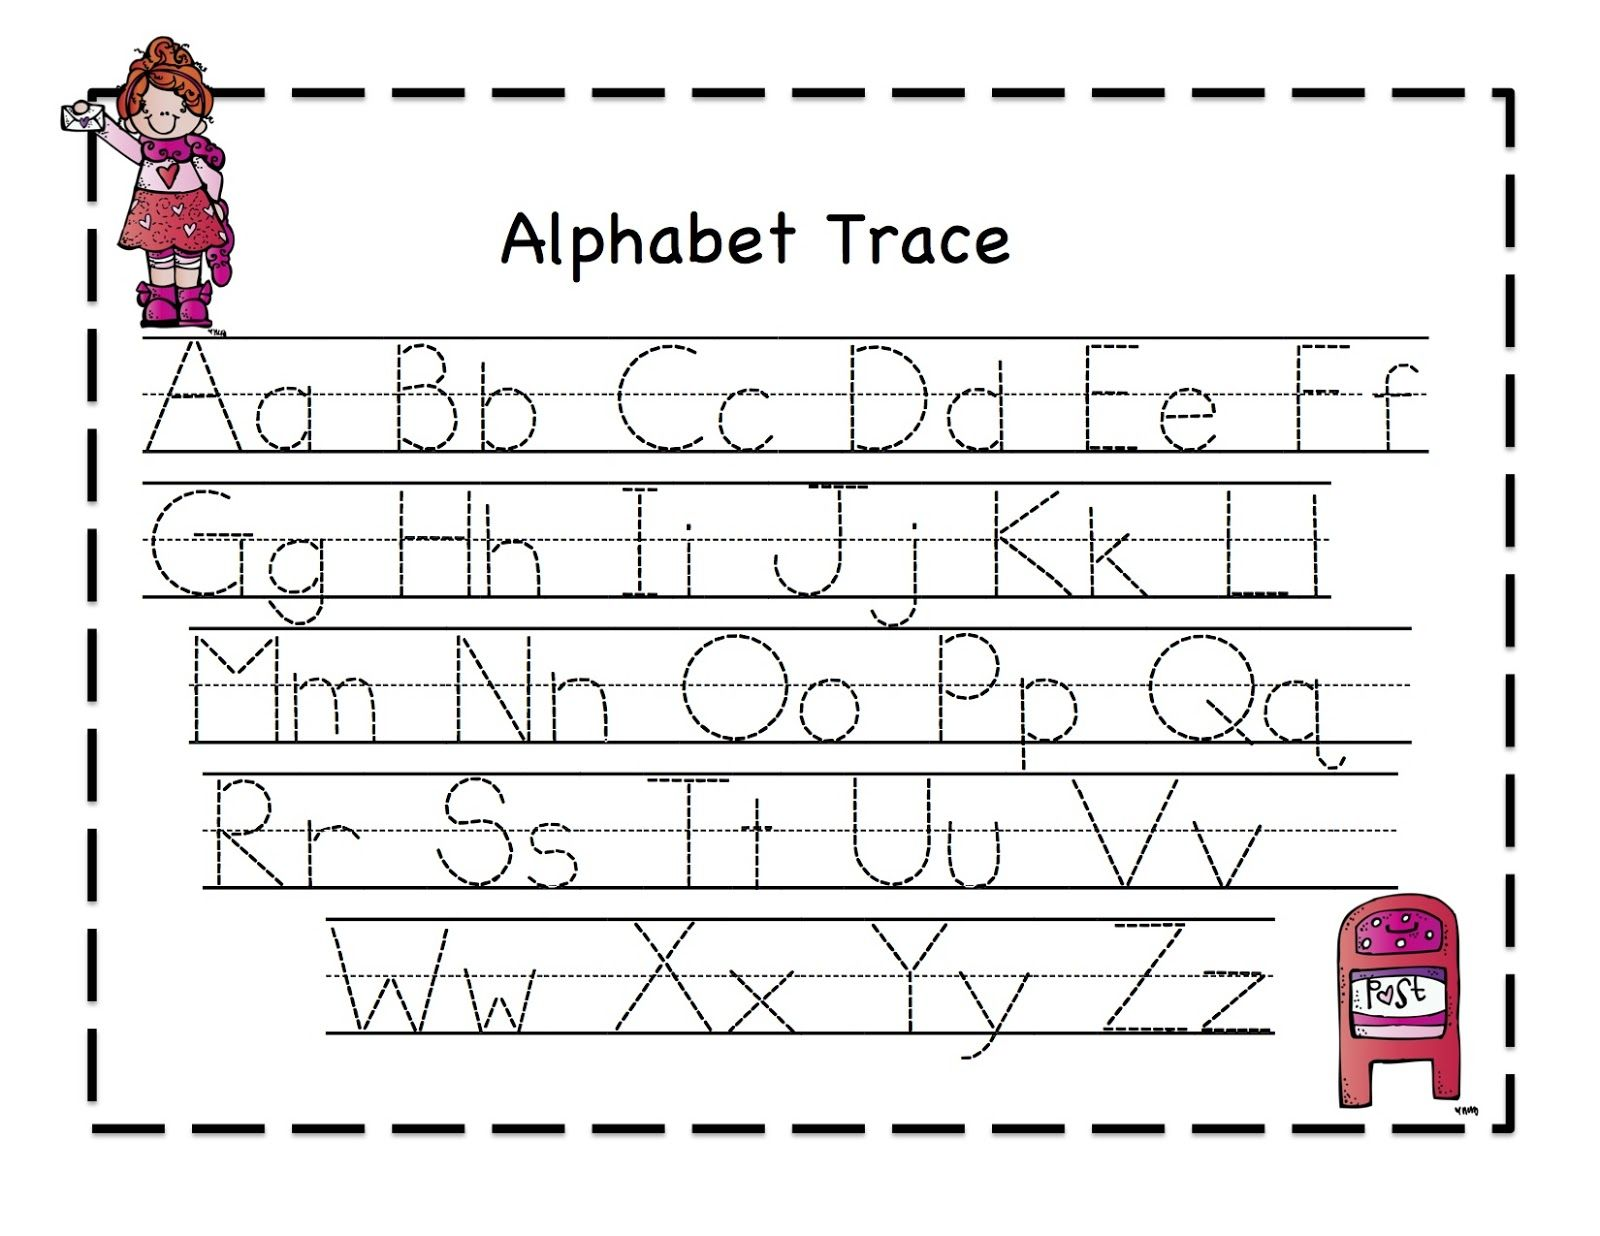 Printables Alphabet Tracing Worksheets alphabets tracing worksheets pichaglobal alphabet trace pichaglobal